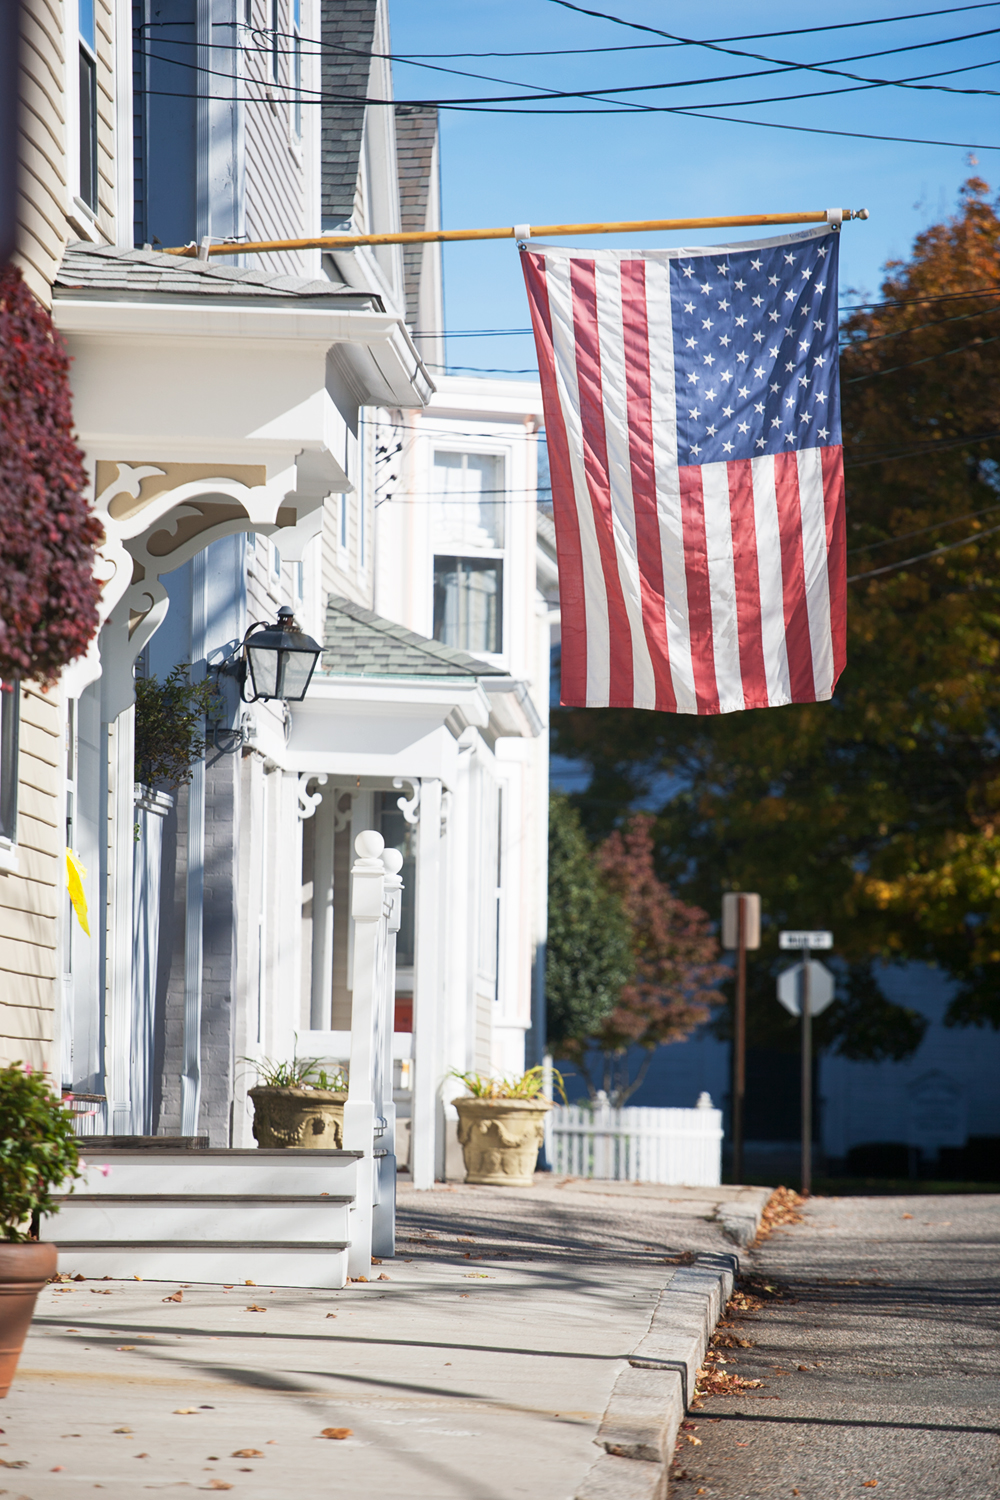 I don't often use the word quaint, only because I feel like it's over used and could be used to  describe any small town form Nantucket to a village in Montana. But, that's the only word I've got for this area. It truly is a place to come slow down, take mid morning walks, admire the early settlement architecture, and take in the slow sea breeze coming off Watch Hill beach.